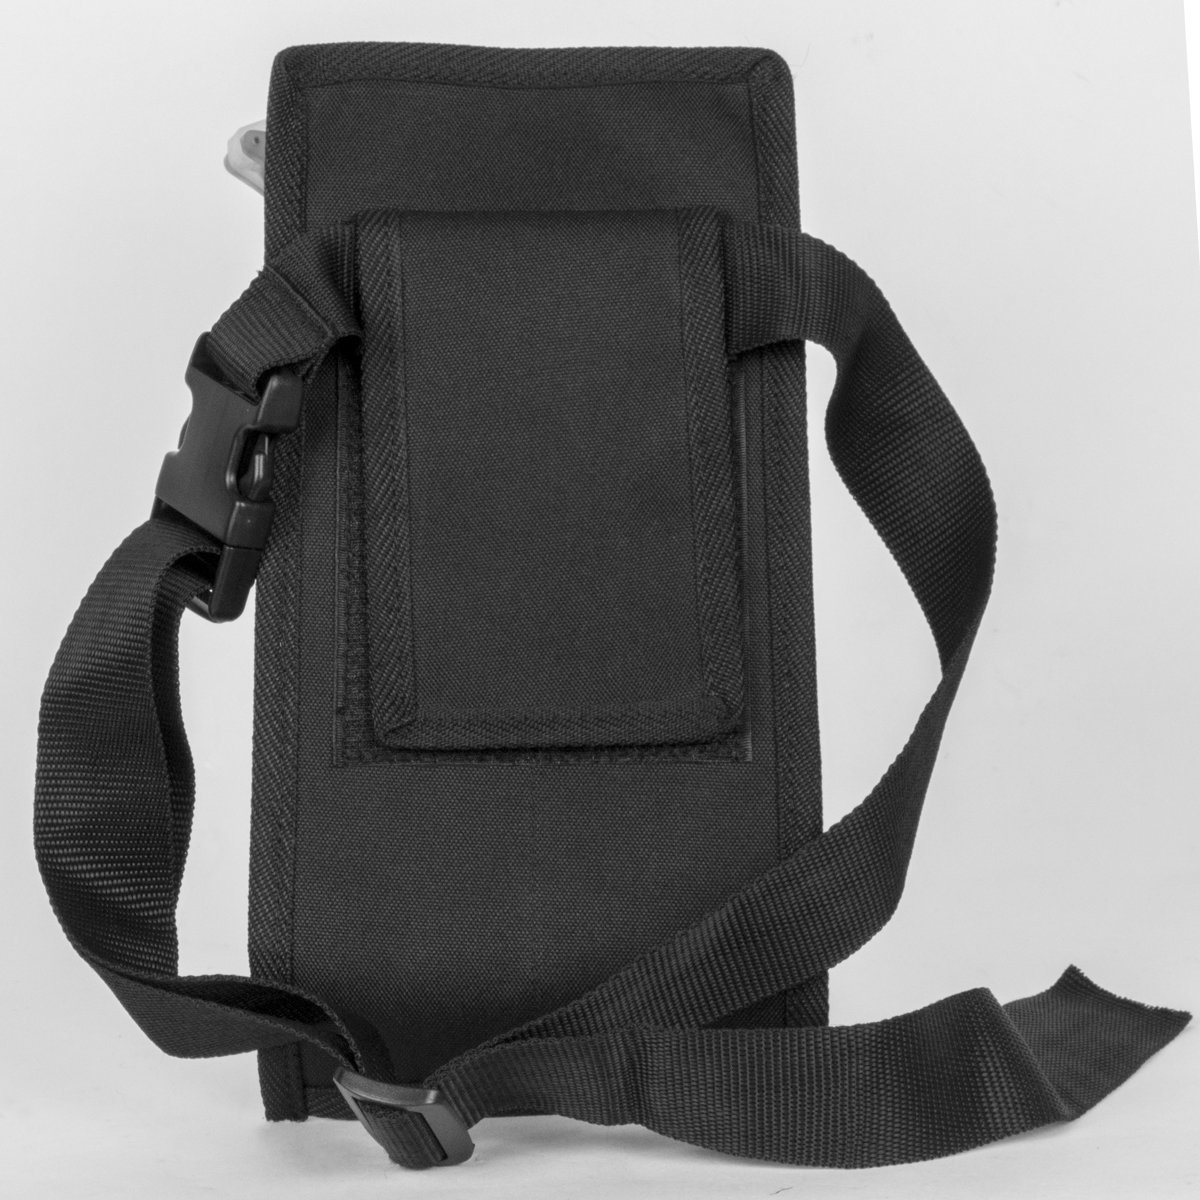 View larger image of Valken Kilo 2 Pod Web Belt Paintball Pod Pouch